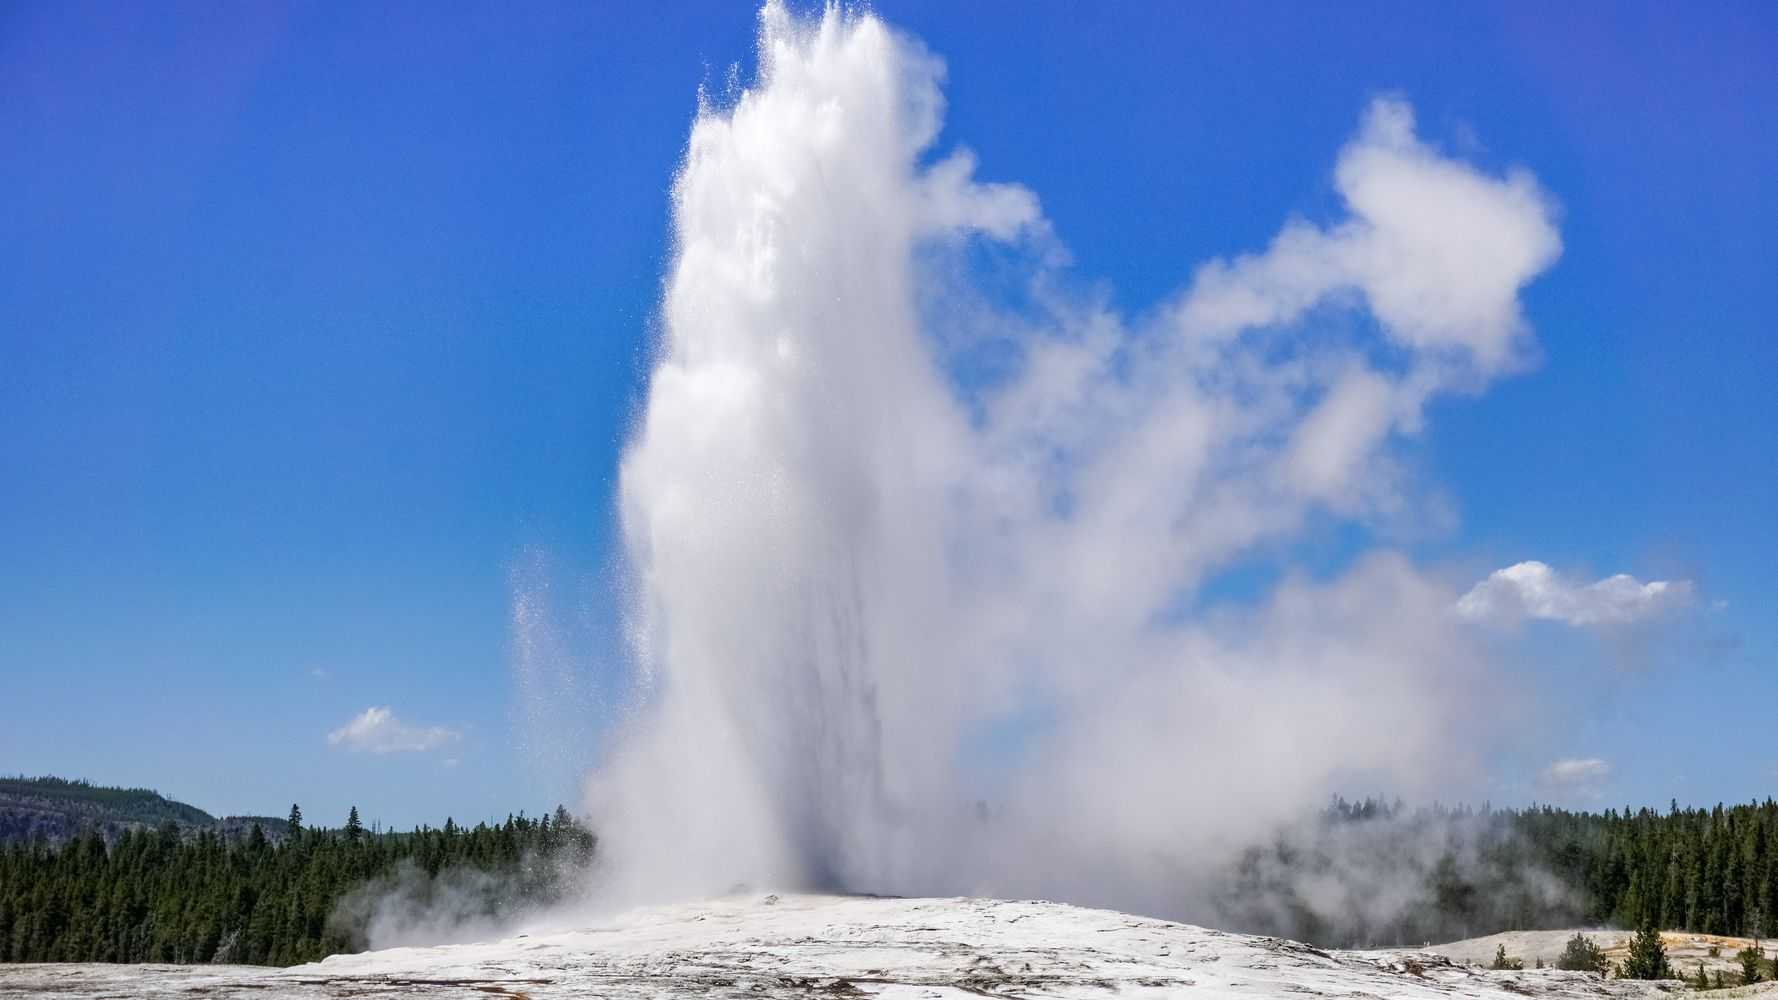 Woman Who Illegally Entered Yellowstone Suffers Burns Near